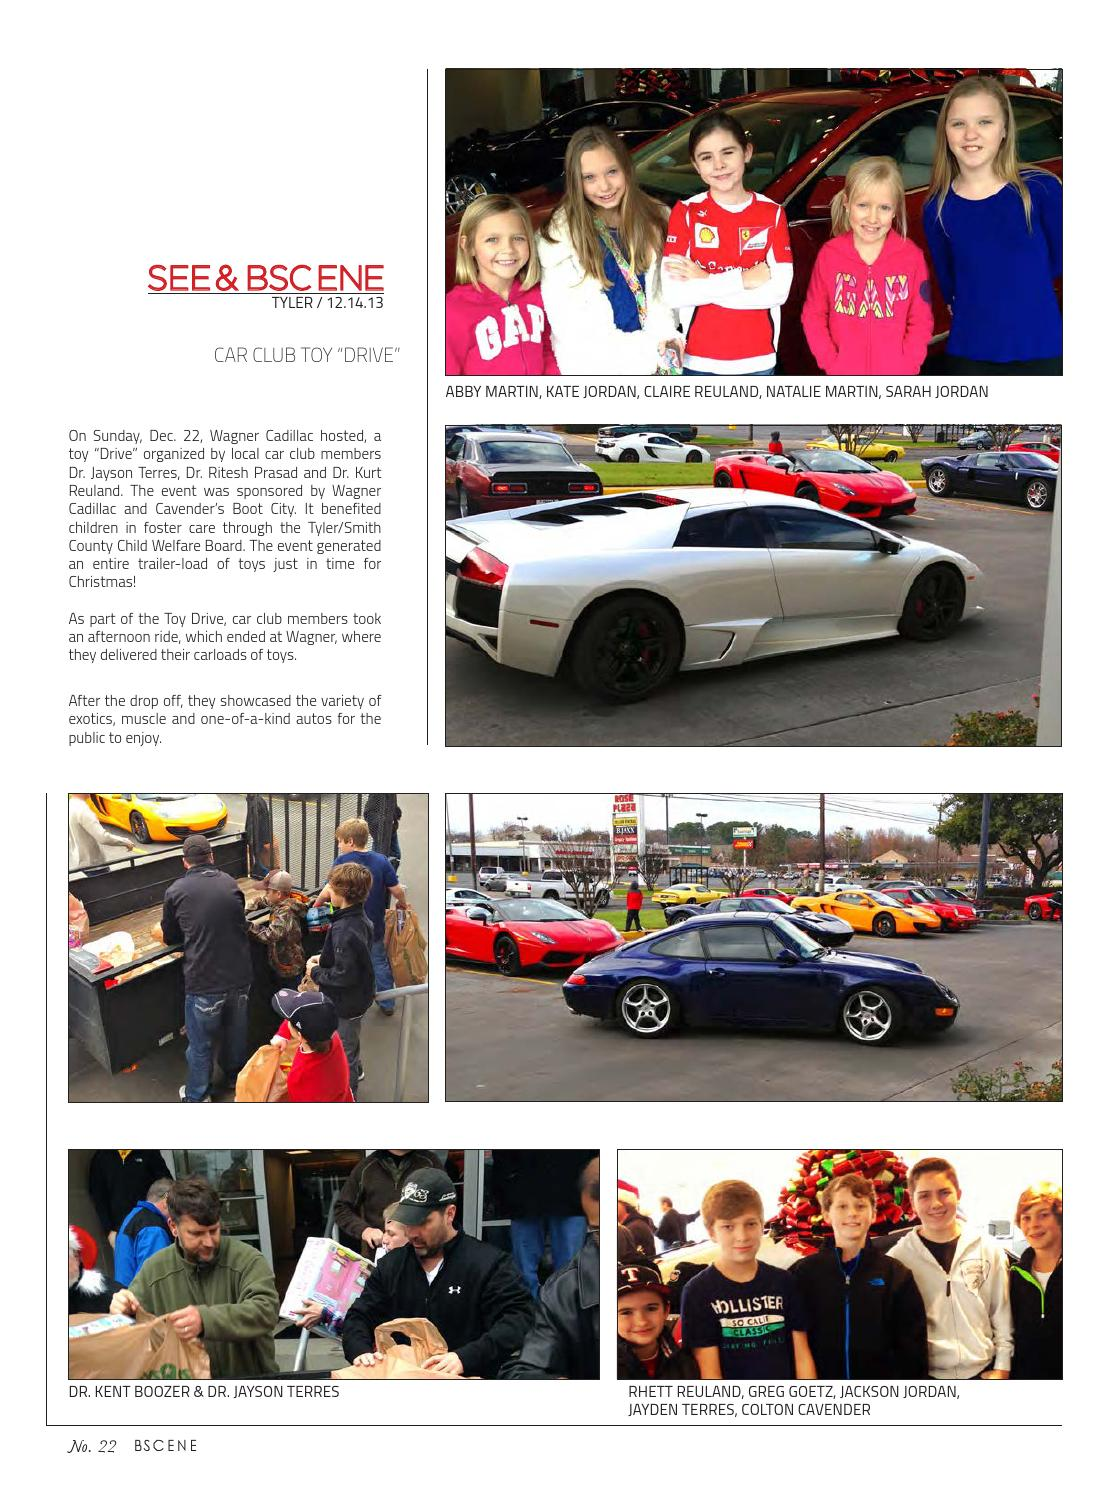 BSCENE Magazine - JANUARY 2014 Issue by BSCENE Magazine - issuu